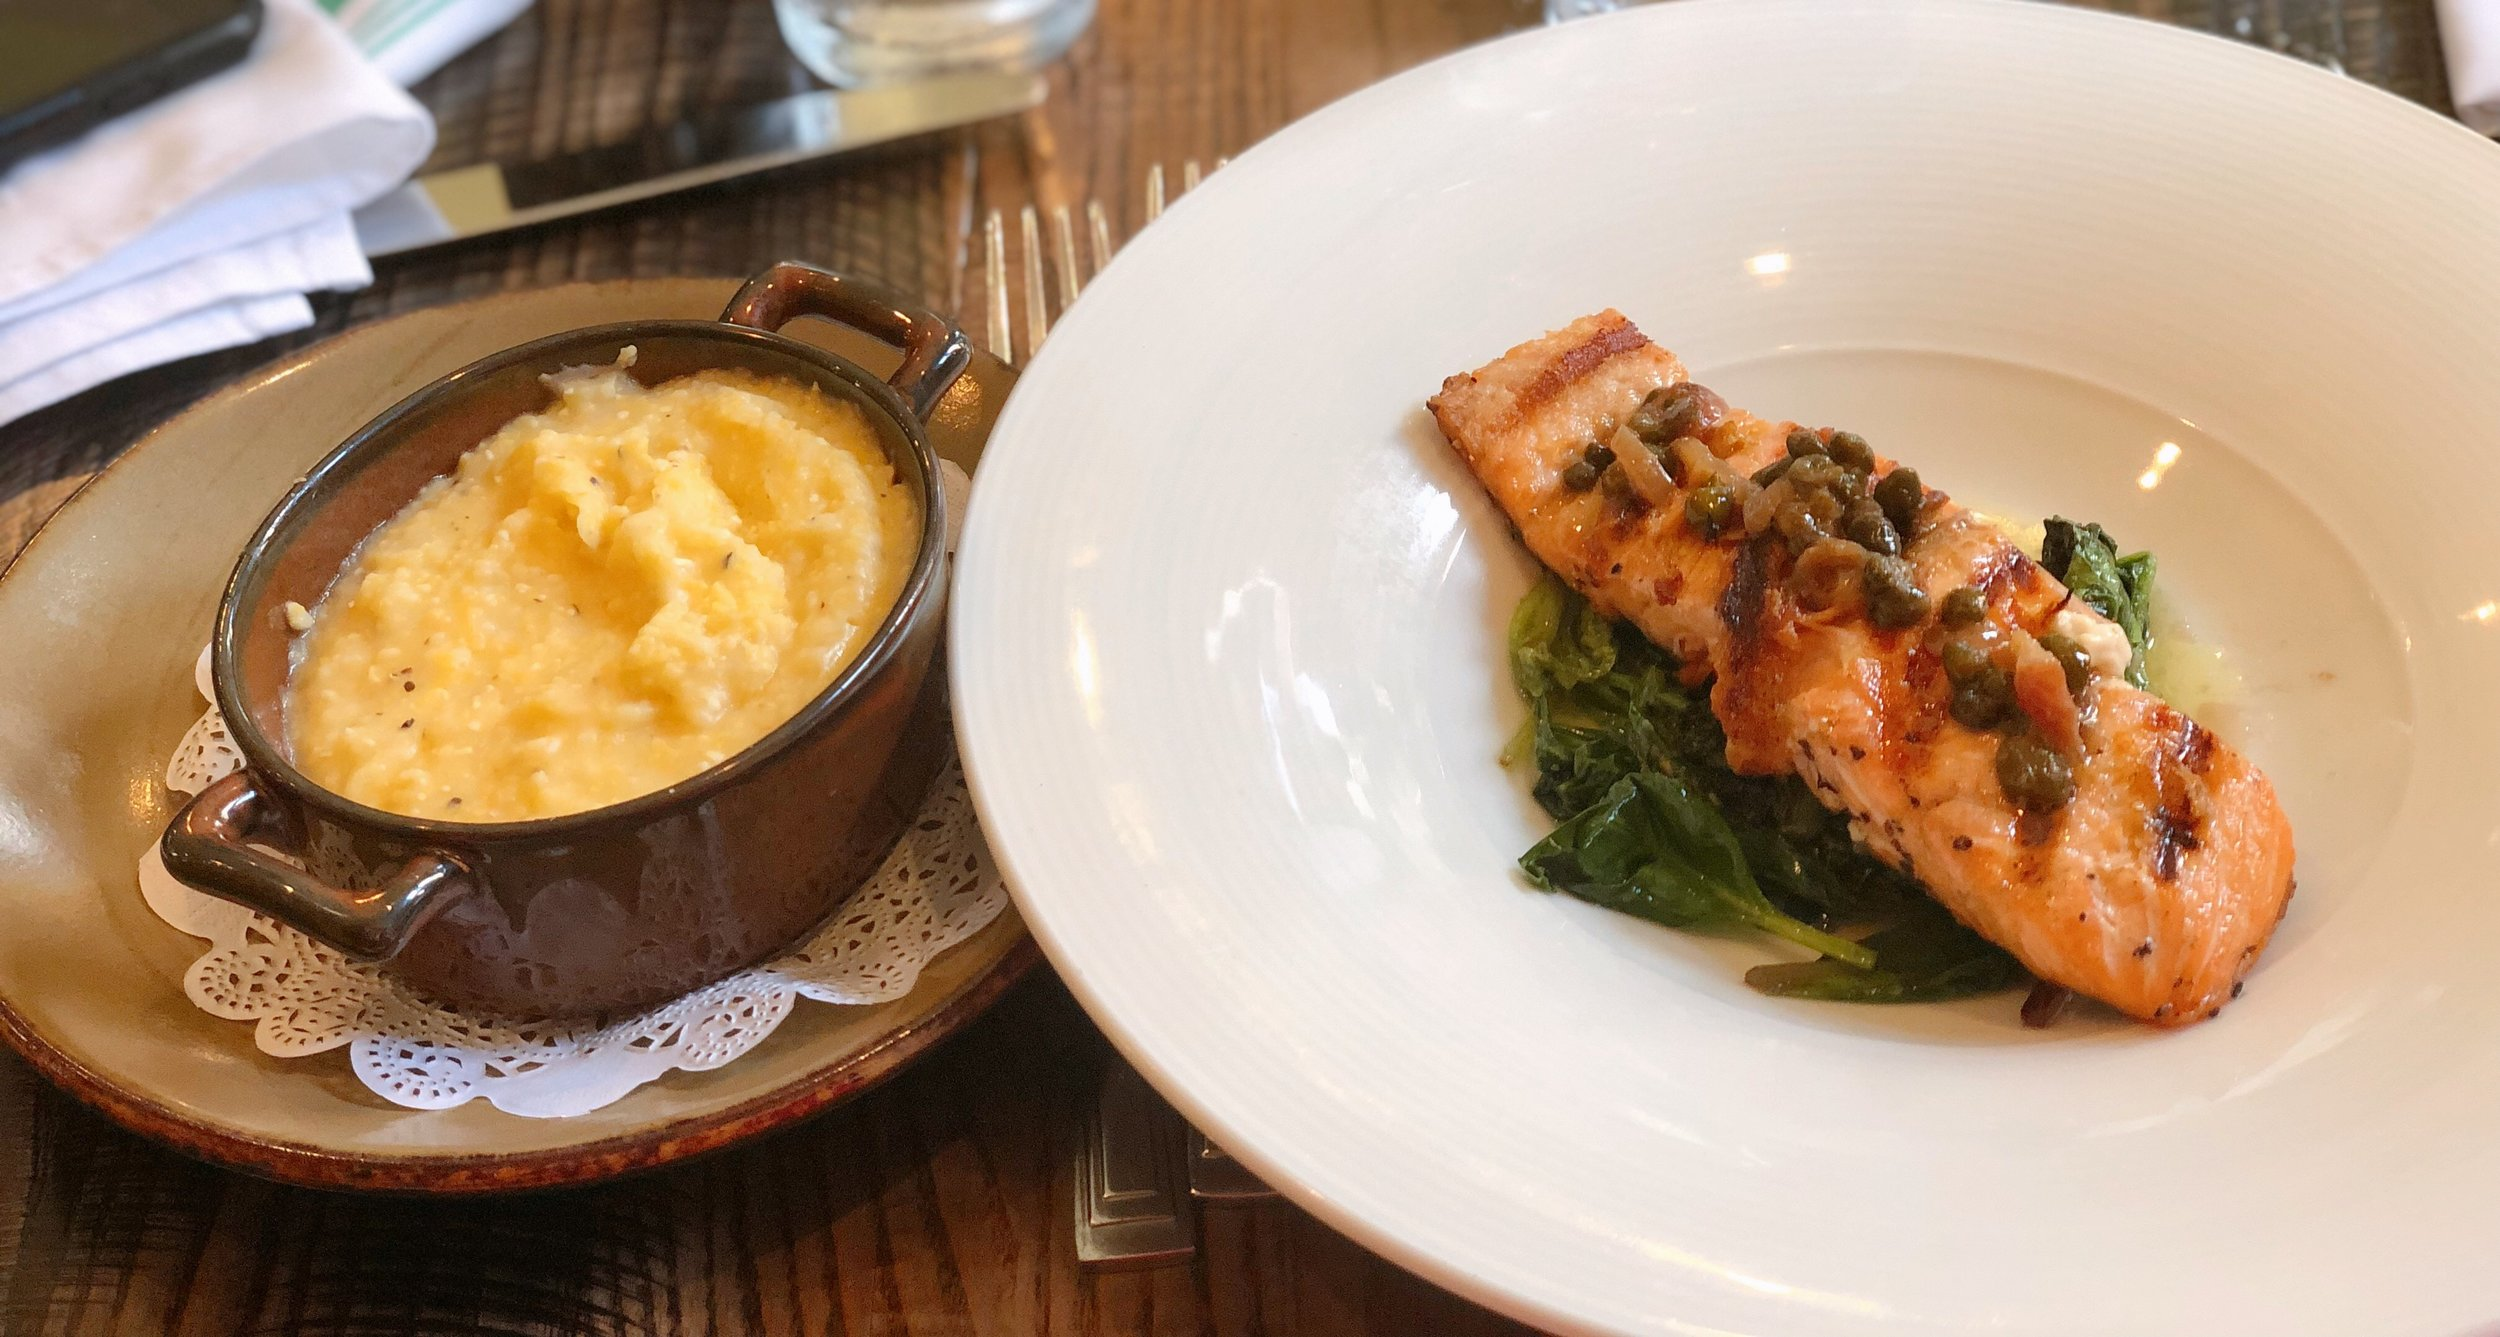 Salmon and Grits from Vyoone's Brunch Menu